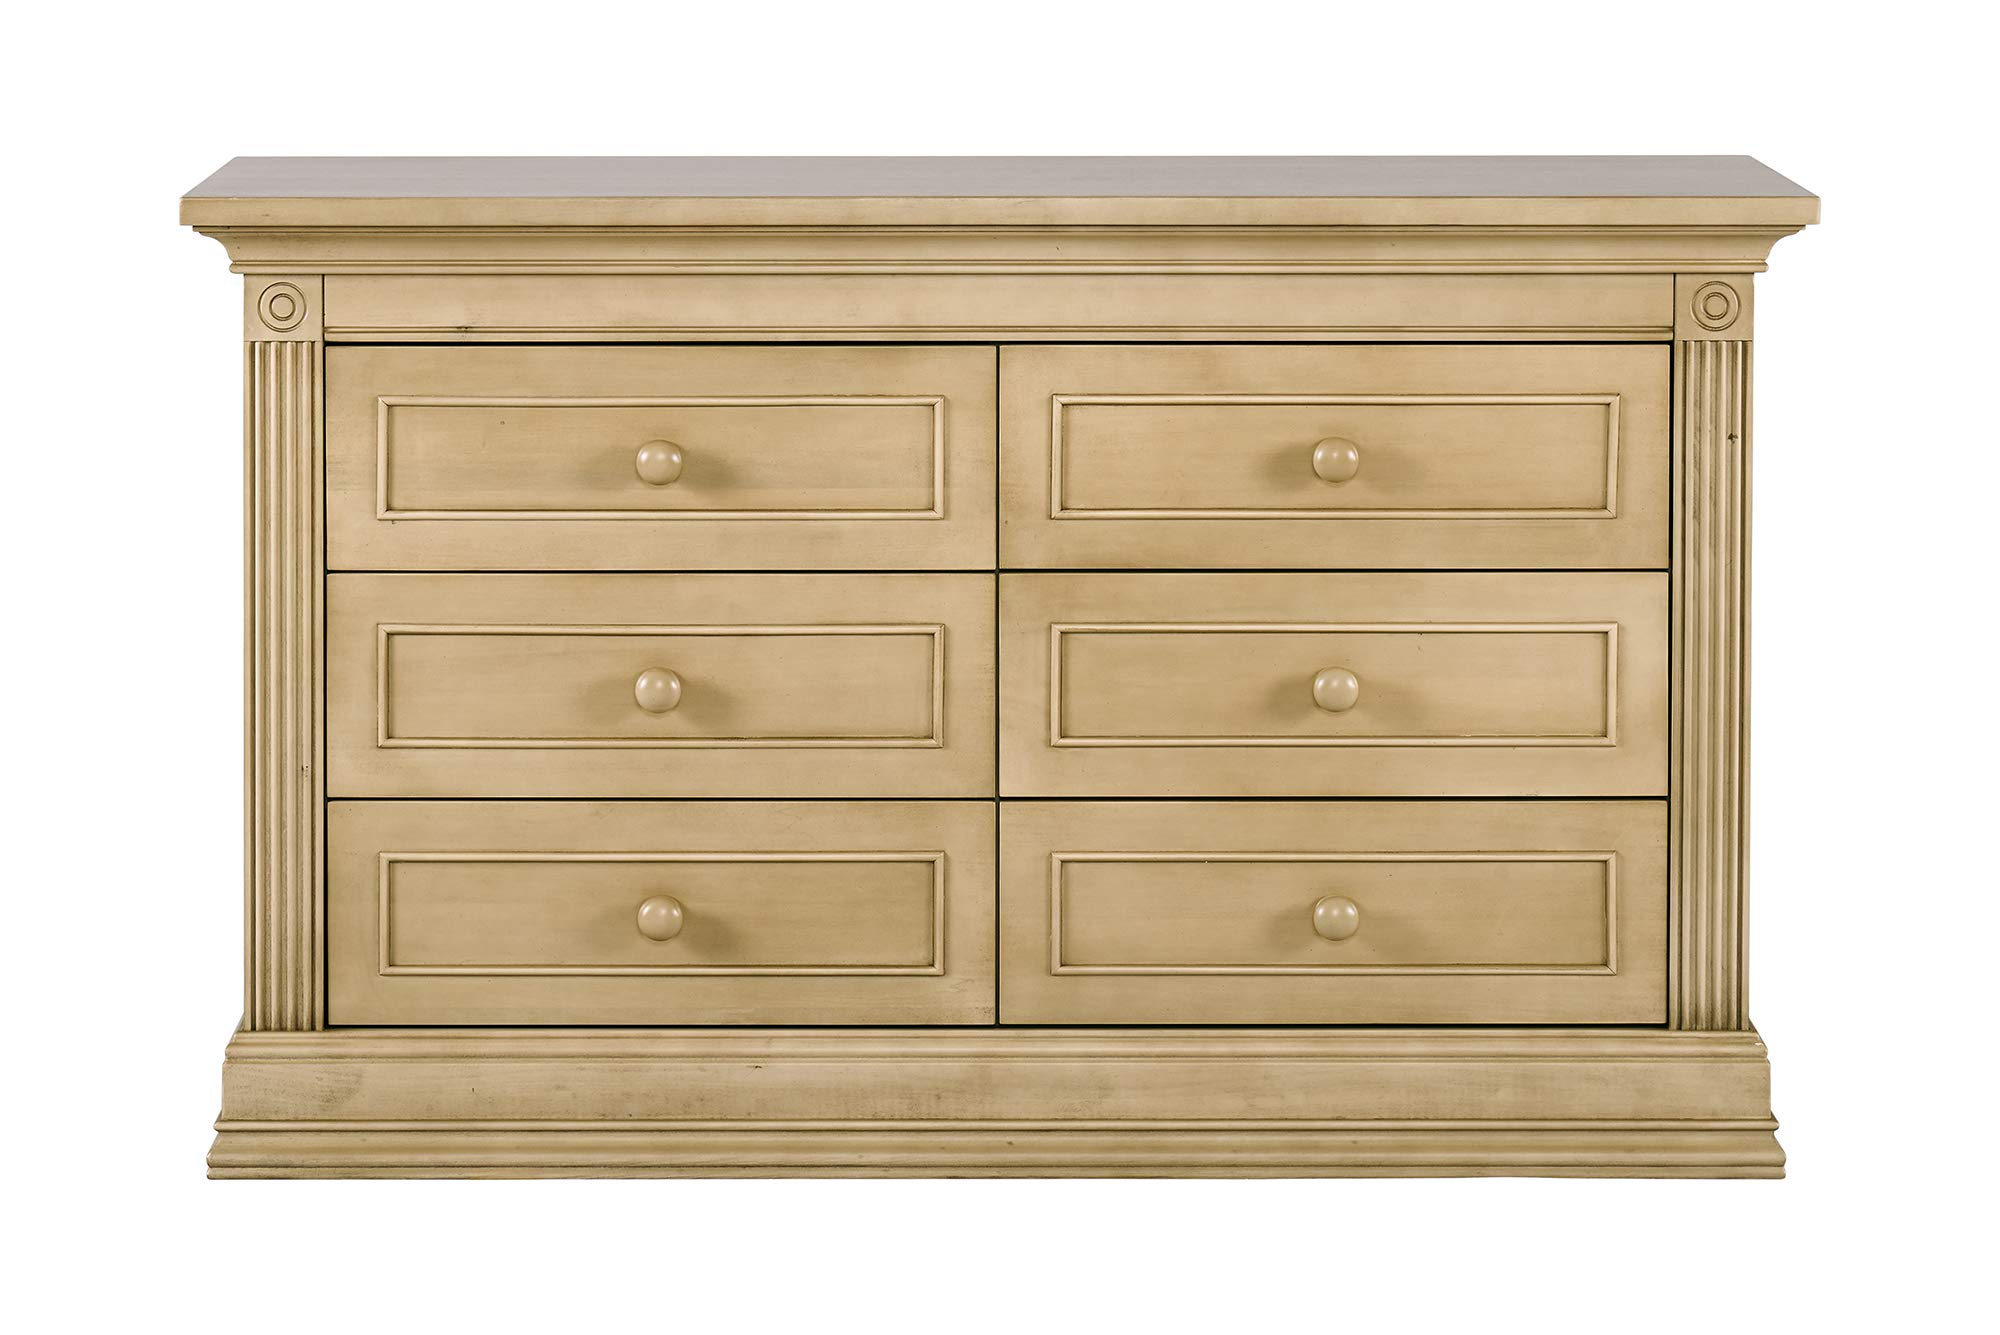 Montana Collection Natural Hardwood 6 Drawer Dresser | Lasting Quality & Design | Kiln-dried & Hand-Crafted Construction | 56'' x 18.5'' x 34'', Driftwood by Baby Cache